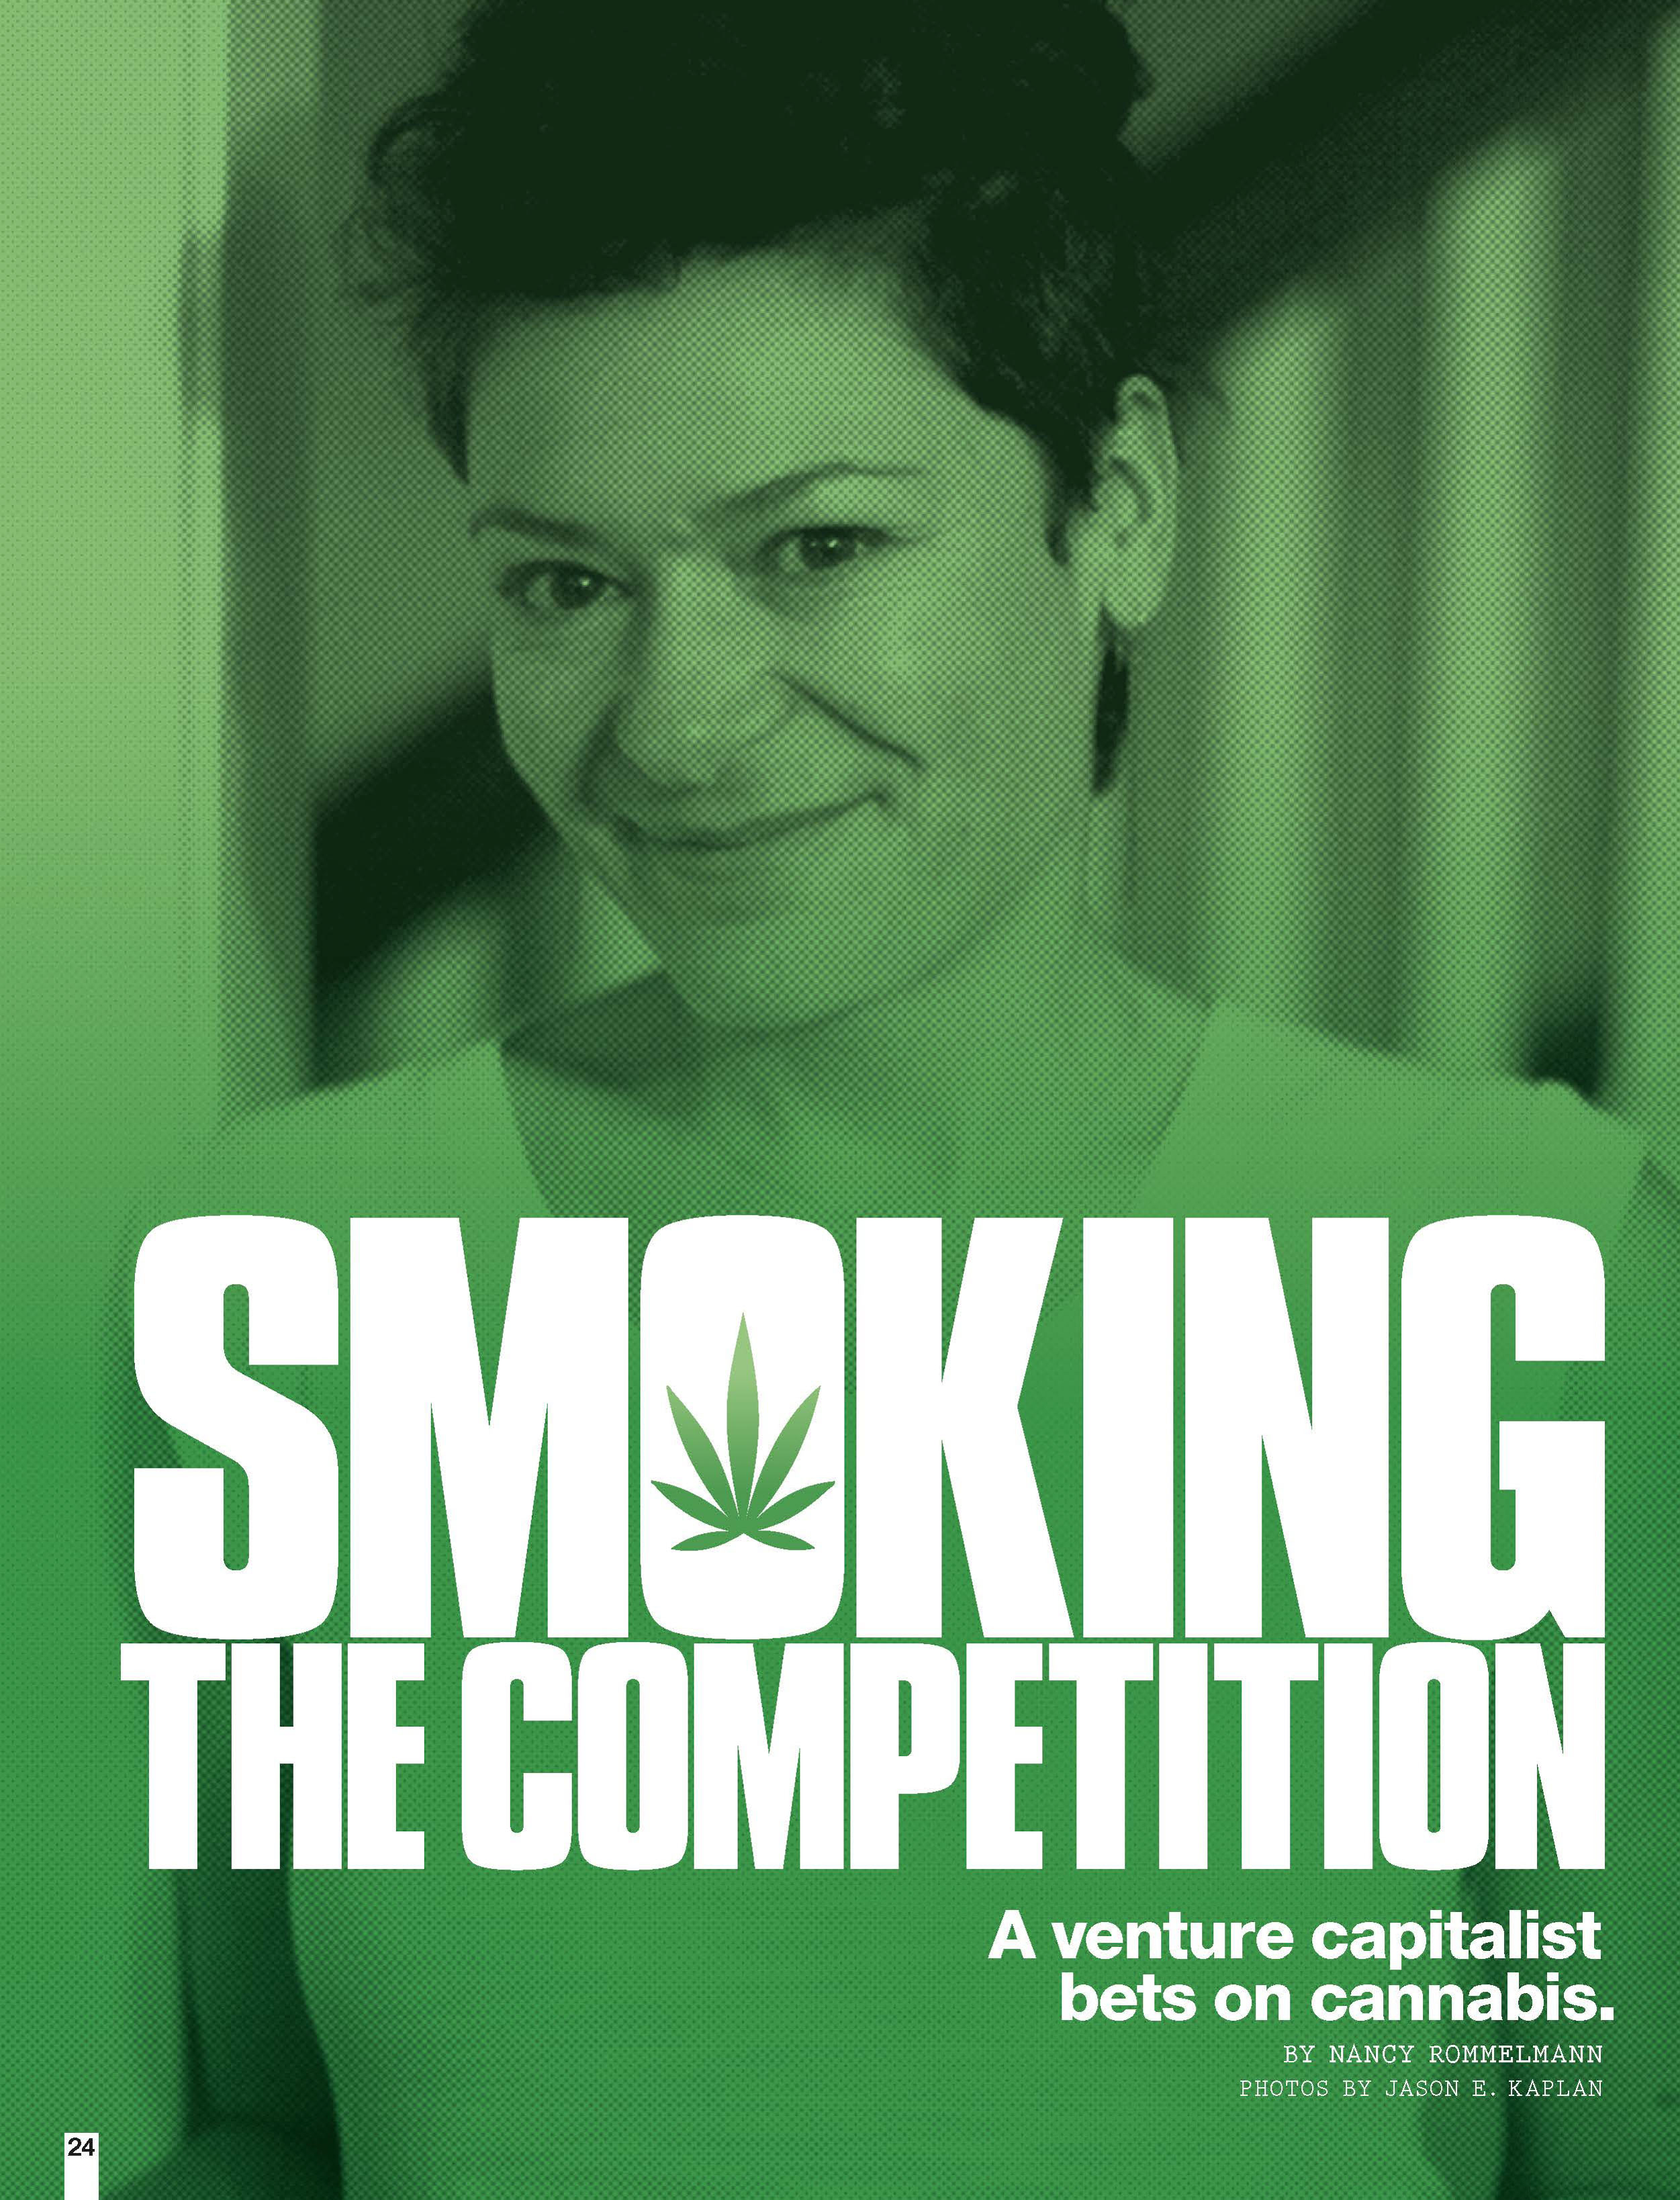 Sara Batterby photograph for cannabis article.